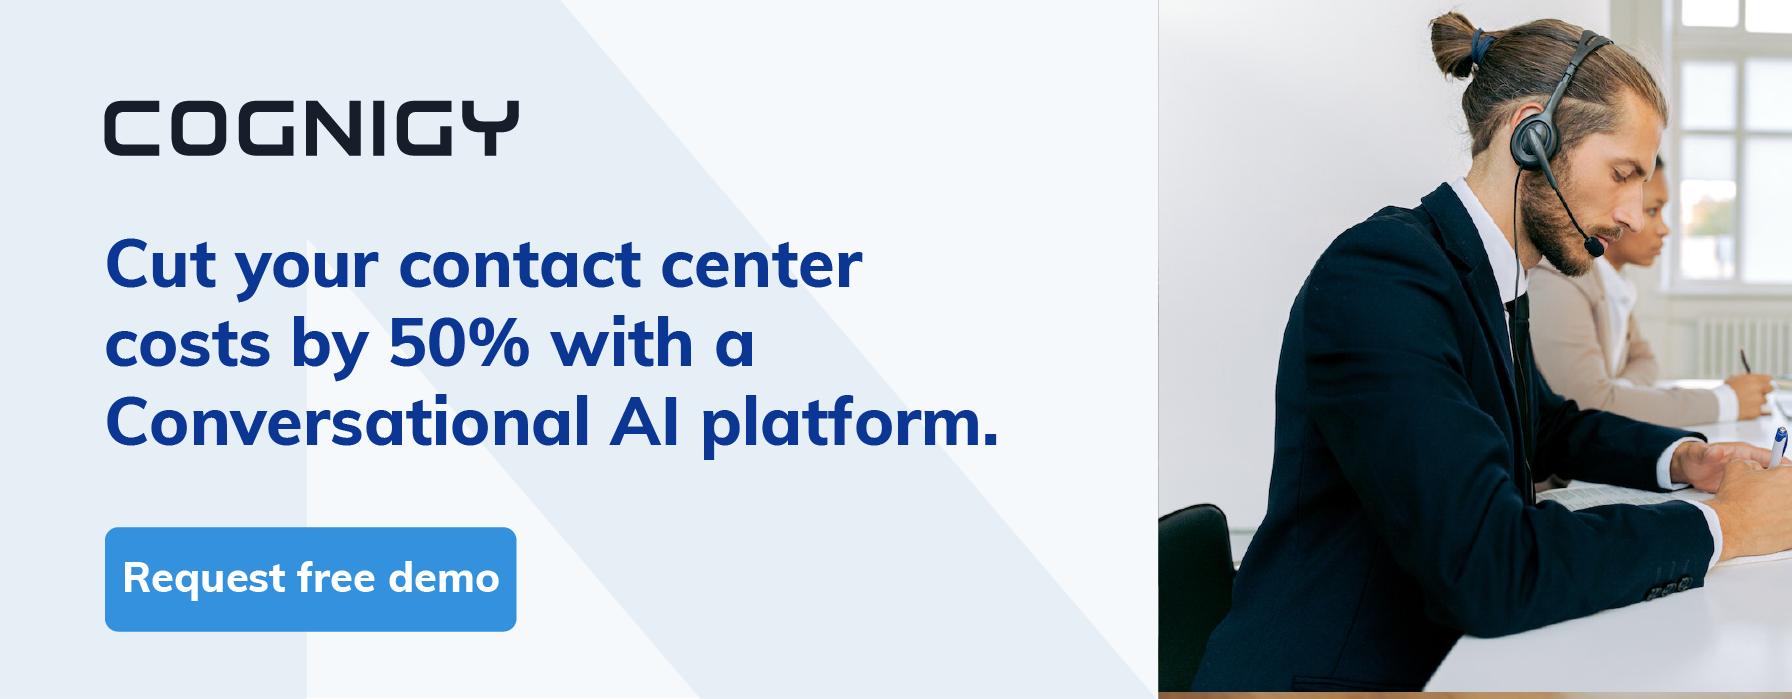 Cut contact center costs by 50% with Conversational AI